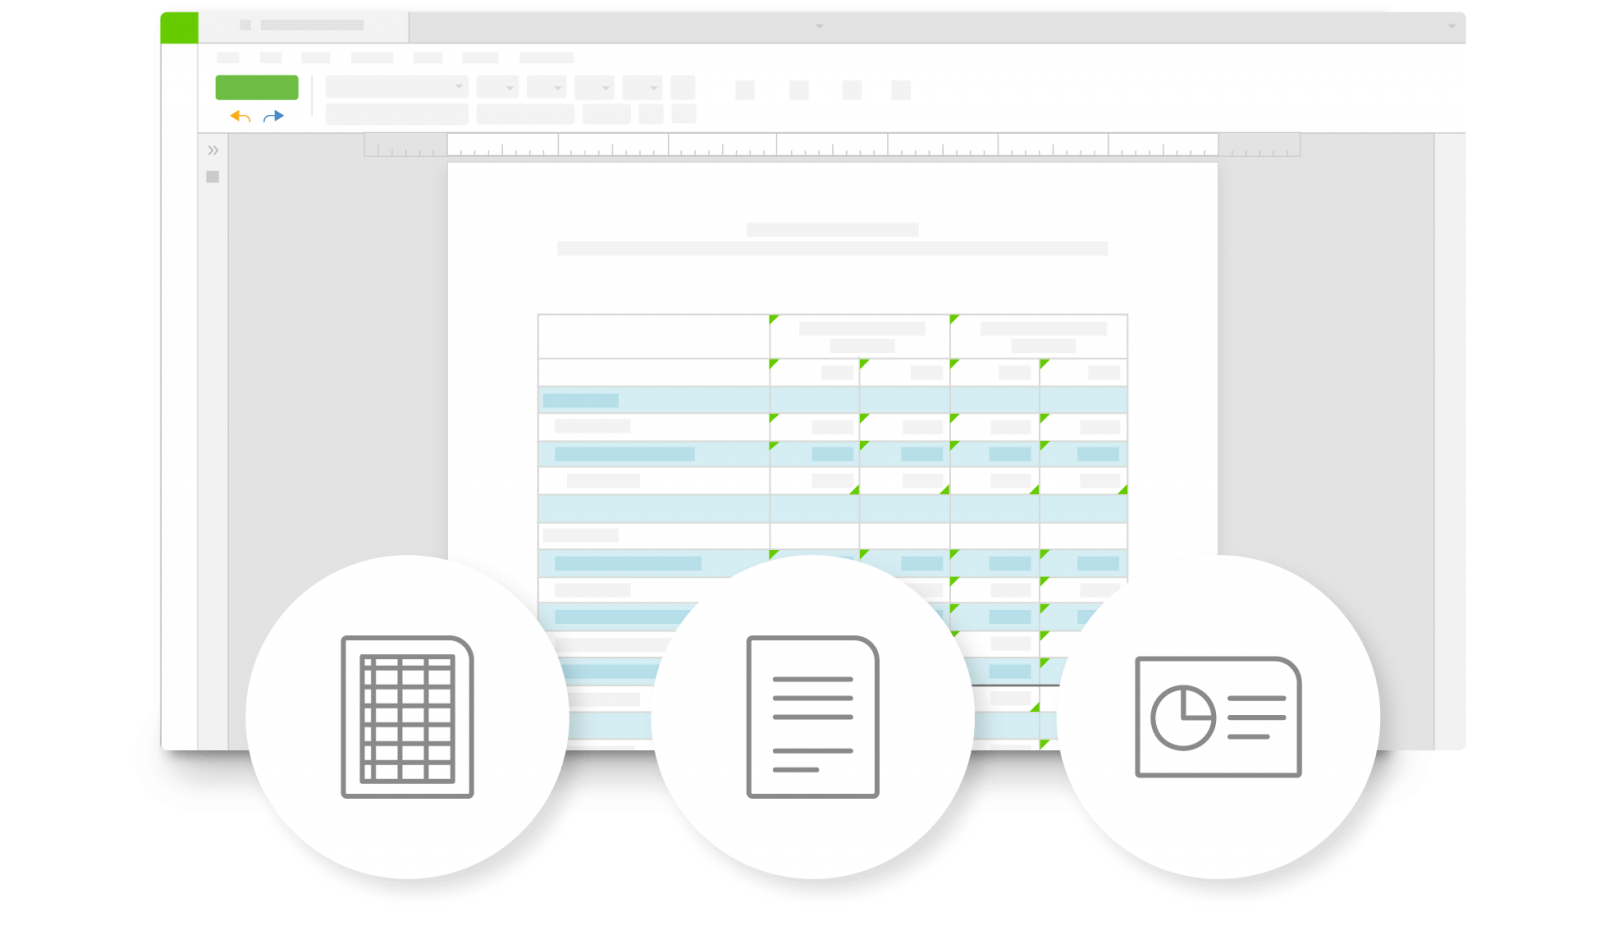 workiva documents, spreadsheets and presentations